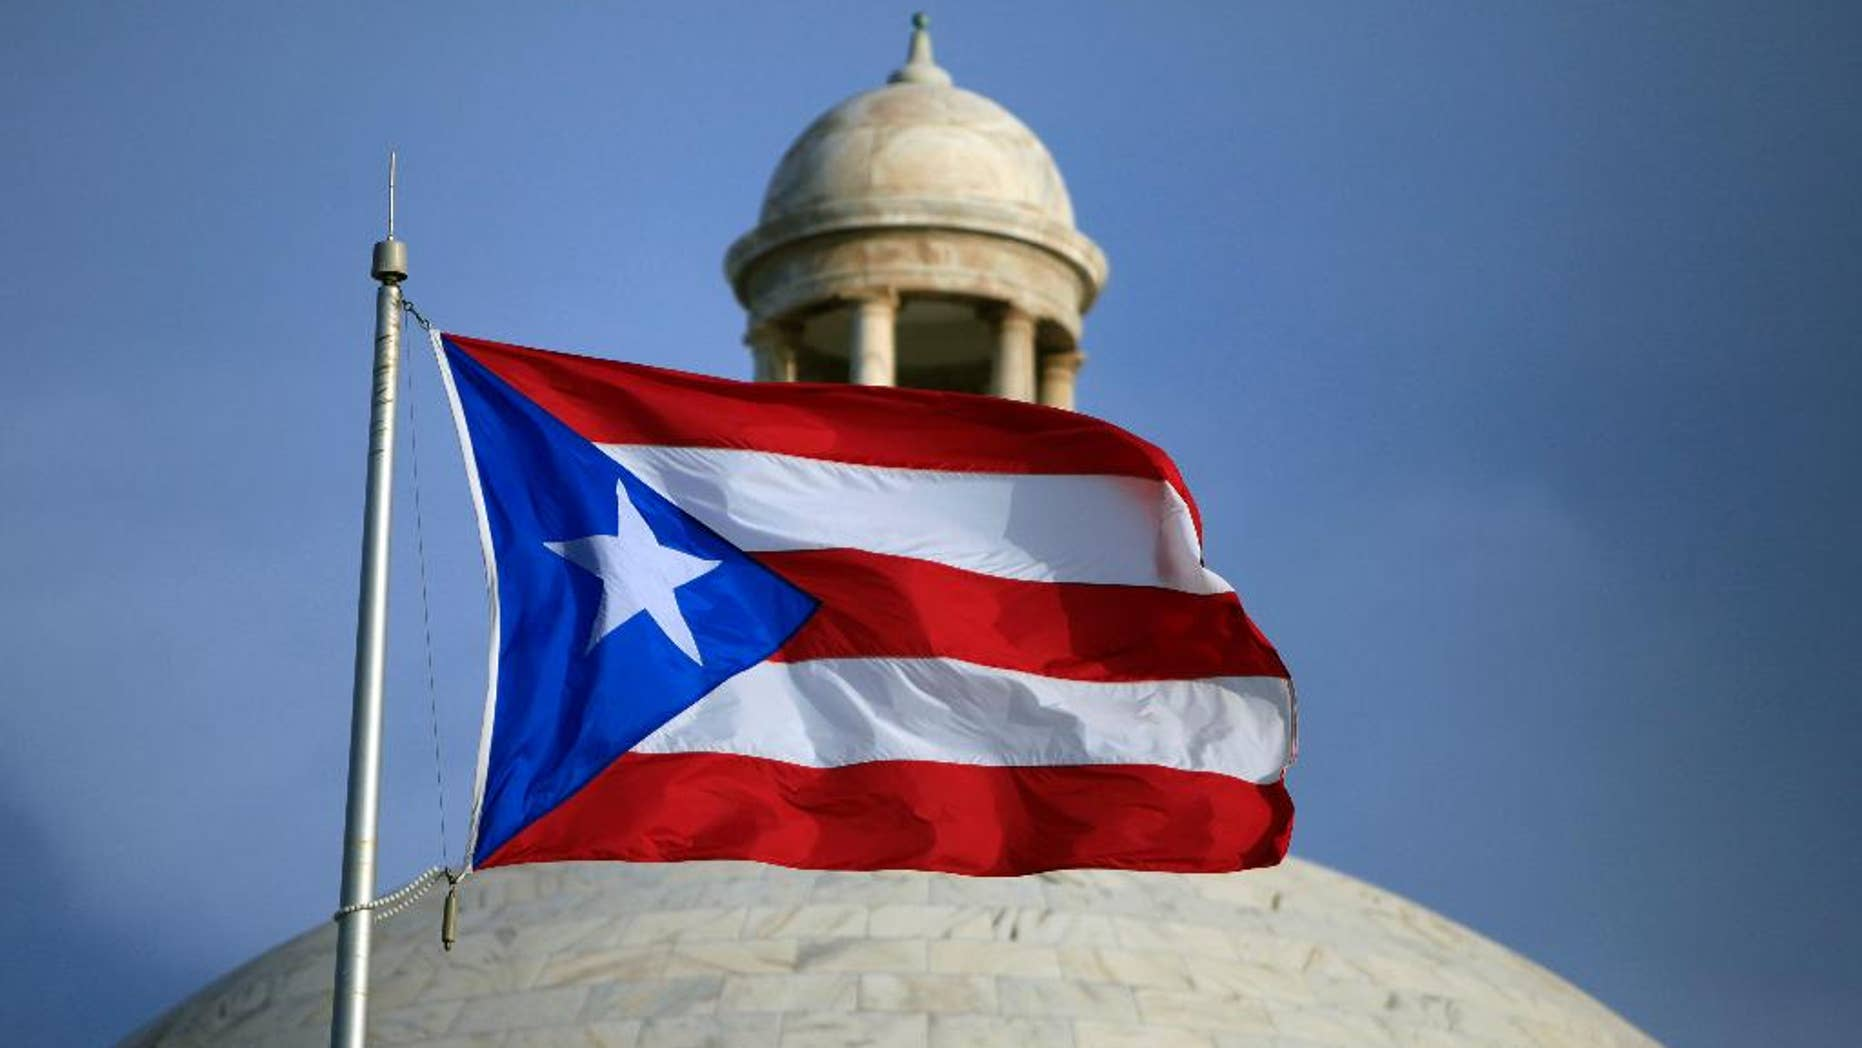 FILE - In this Wednesday, July 29, file 2015 photo, the Puerto Rican flag flies in front of Puerto Rico's Capitol as in San Juan, Puerto Rico. On Monday, April 11, 2016, Puerto Rico released a new proposal to restructure part of its $70 billion debt to buy time to implement a fiscal growth plan as multimillion-dollar payments loom for a U.S. territory facing dwindling cash reserves. (AP Photo/Ricardo Arduengo, File)